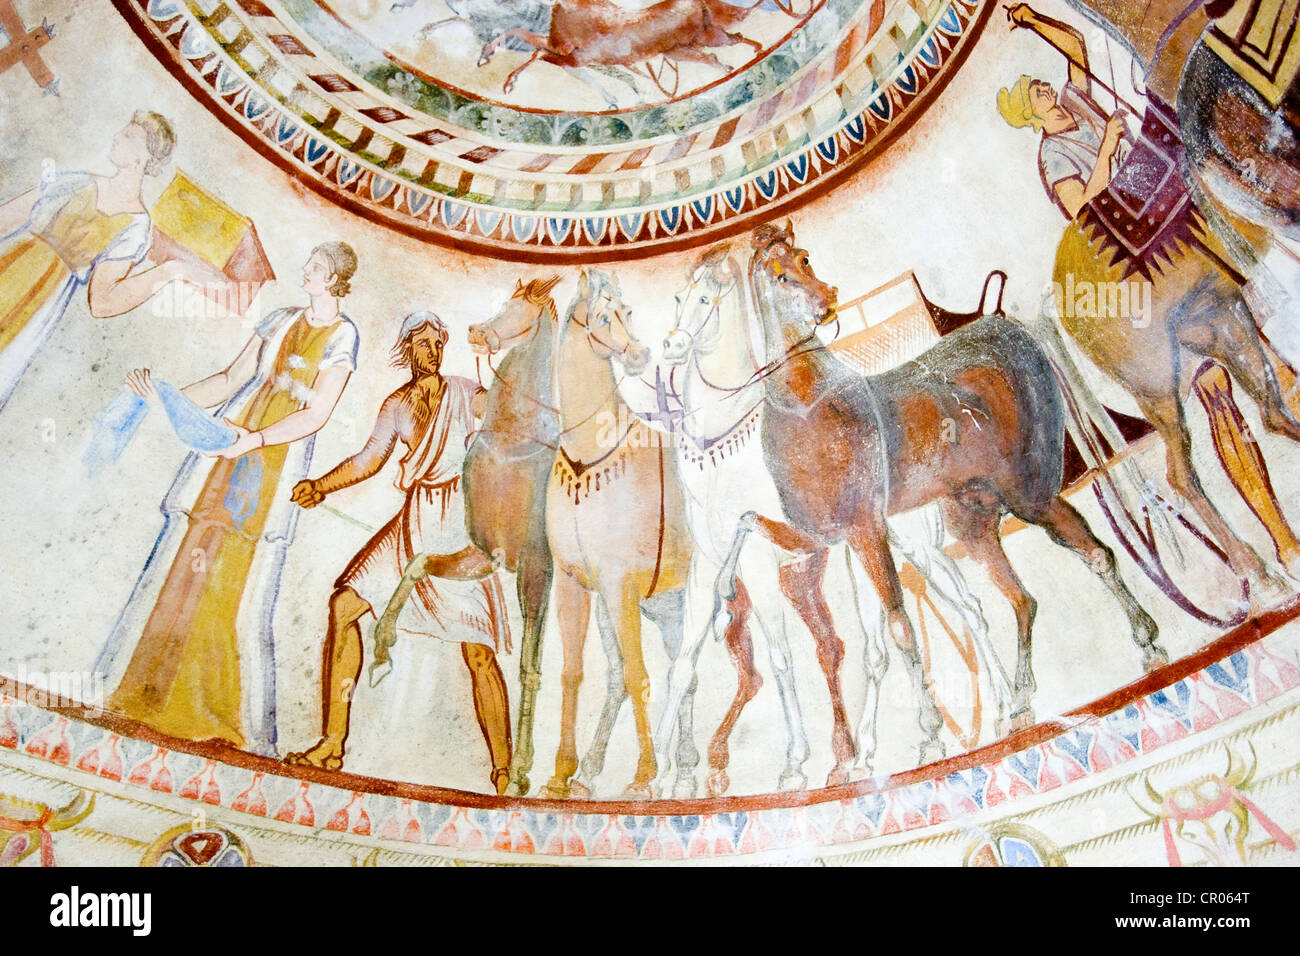 Bulgaria, Kazanlak, Thrace tomb, UNESCO World Heritage, discovered in 1944, the tomb belongs to an important thrace - Stock Image